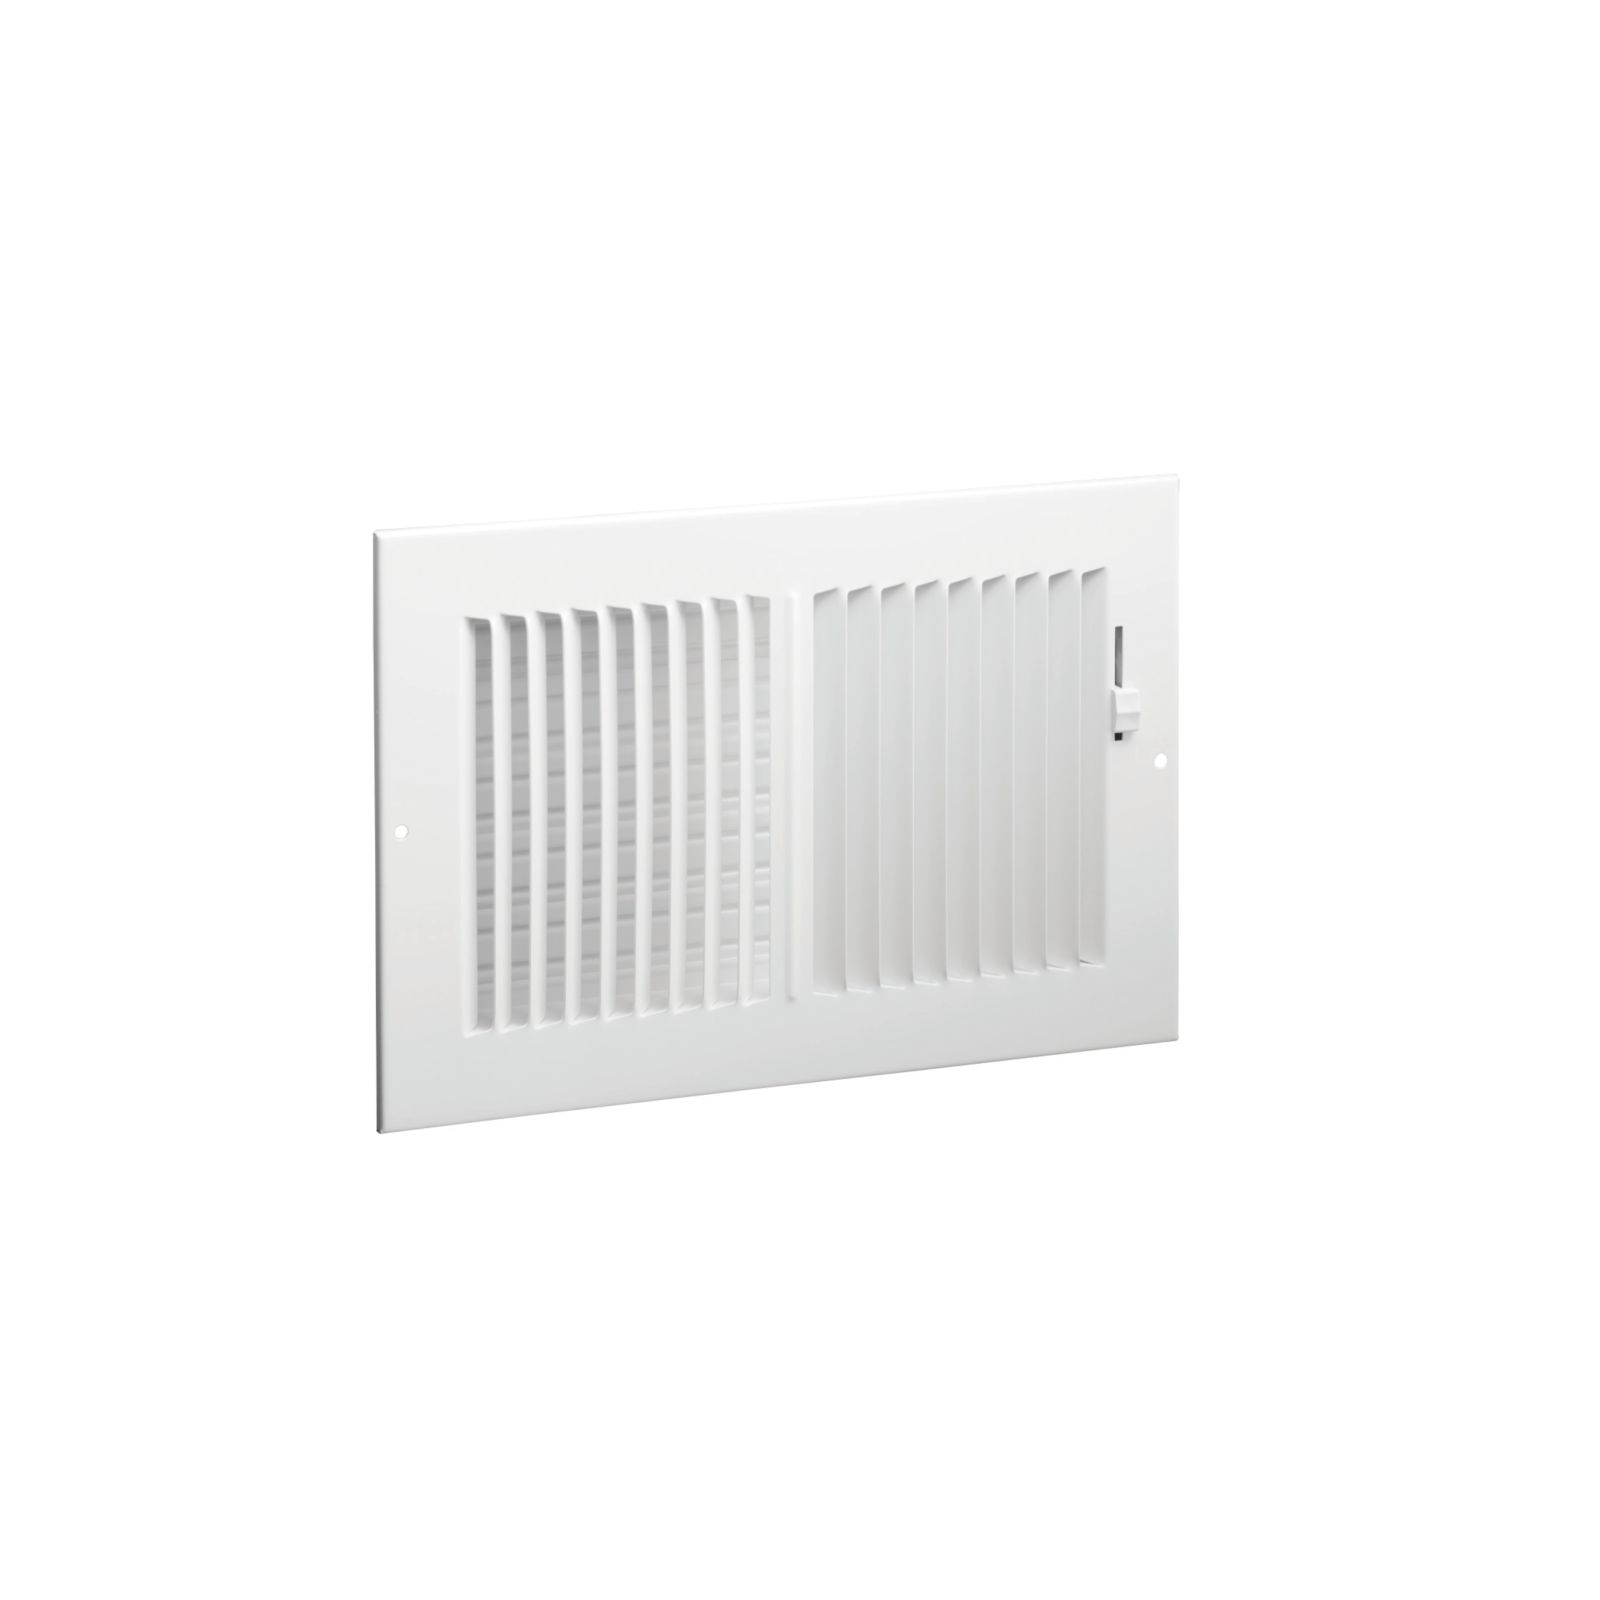 "Hart & Cooley 703912 - #682M Steel 2-Way Sidewall/Ceiling Register, Multi-Shutter Damper with Metal Handle, White, 12"" X 6"""